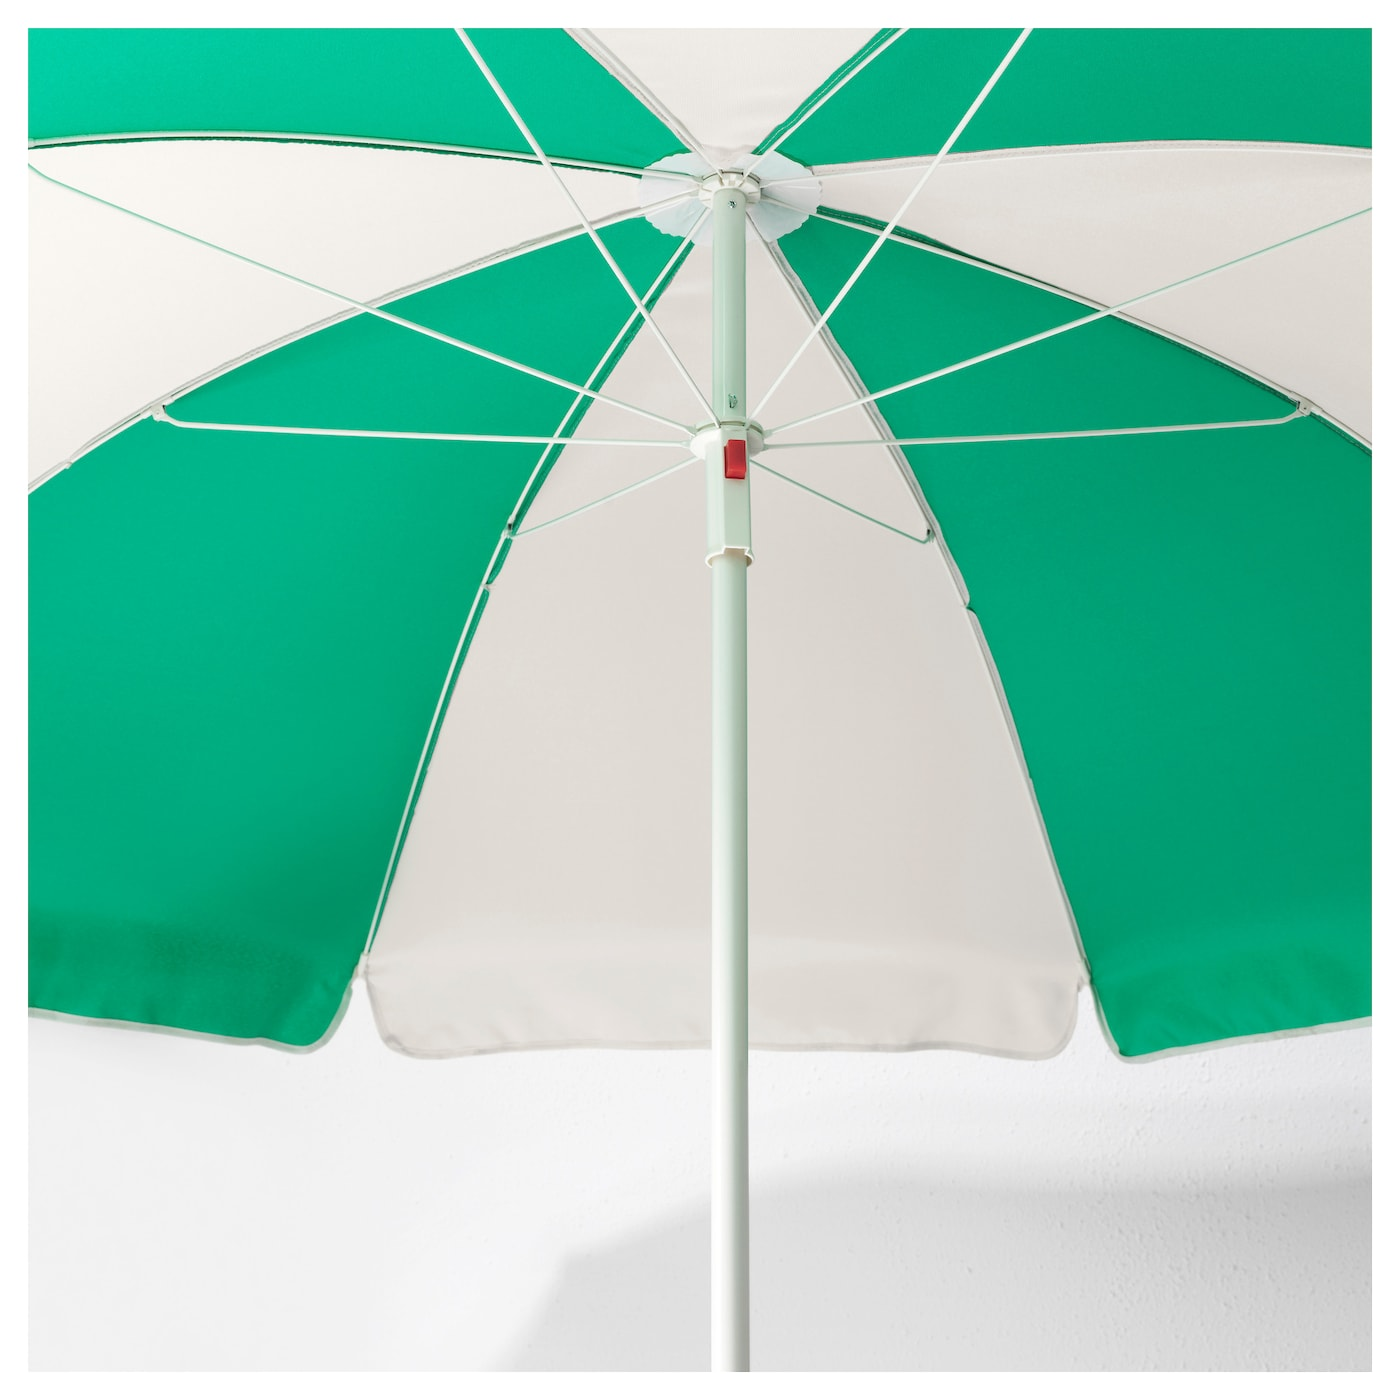 IKEA FISKÖ/RAMSÖ parasol with base The hook-and-loop strap keeps the fabric in place when folded.